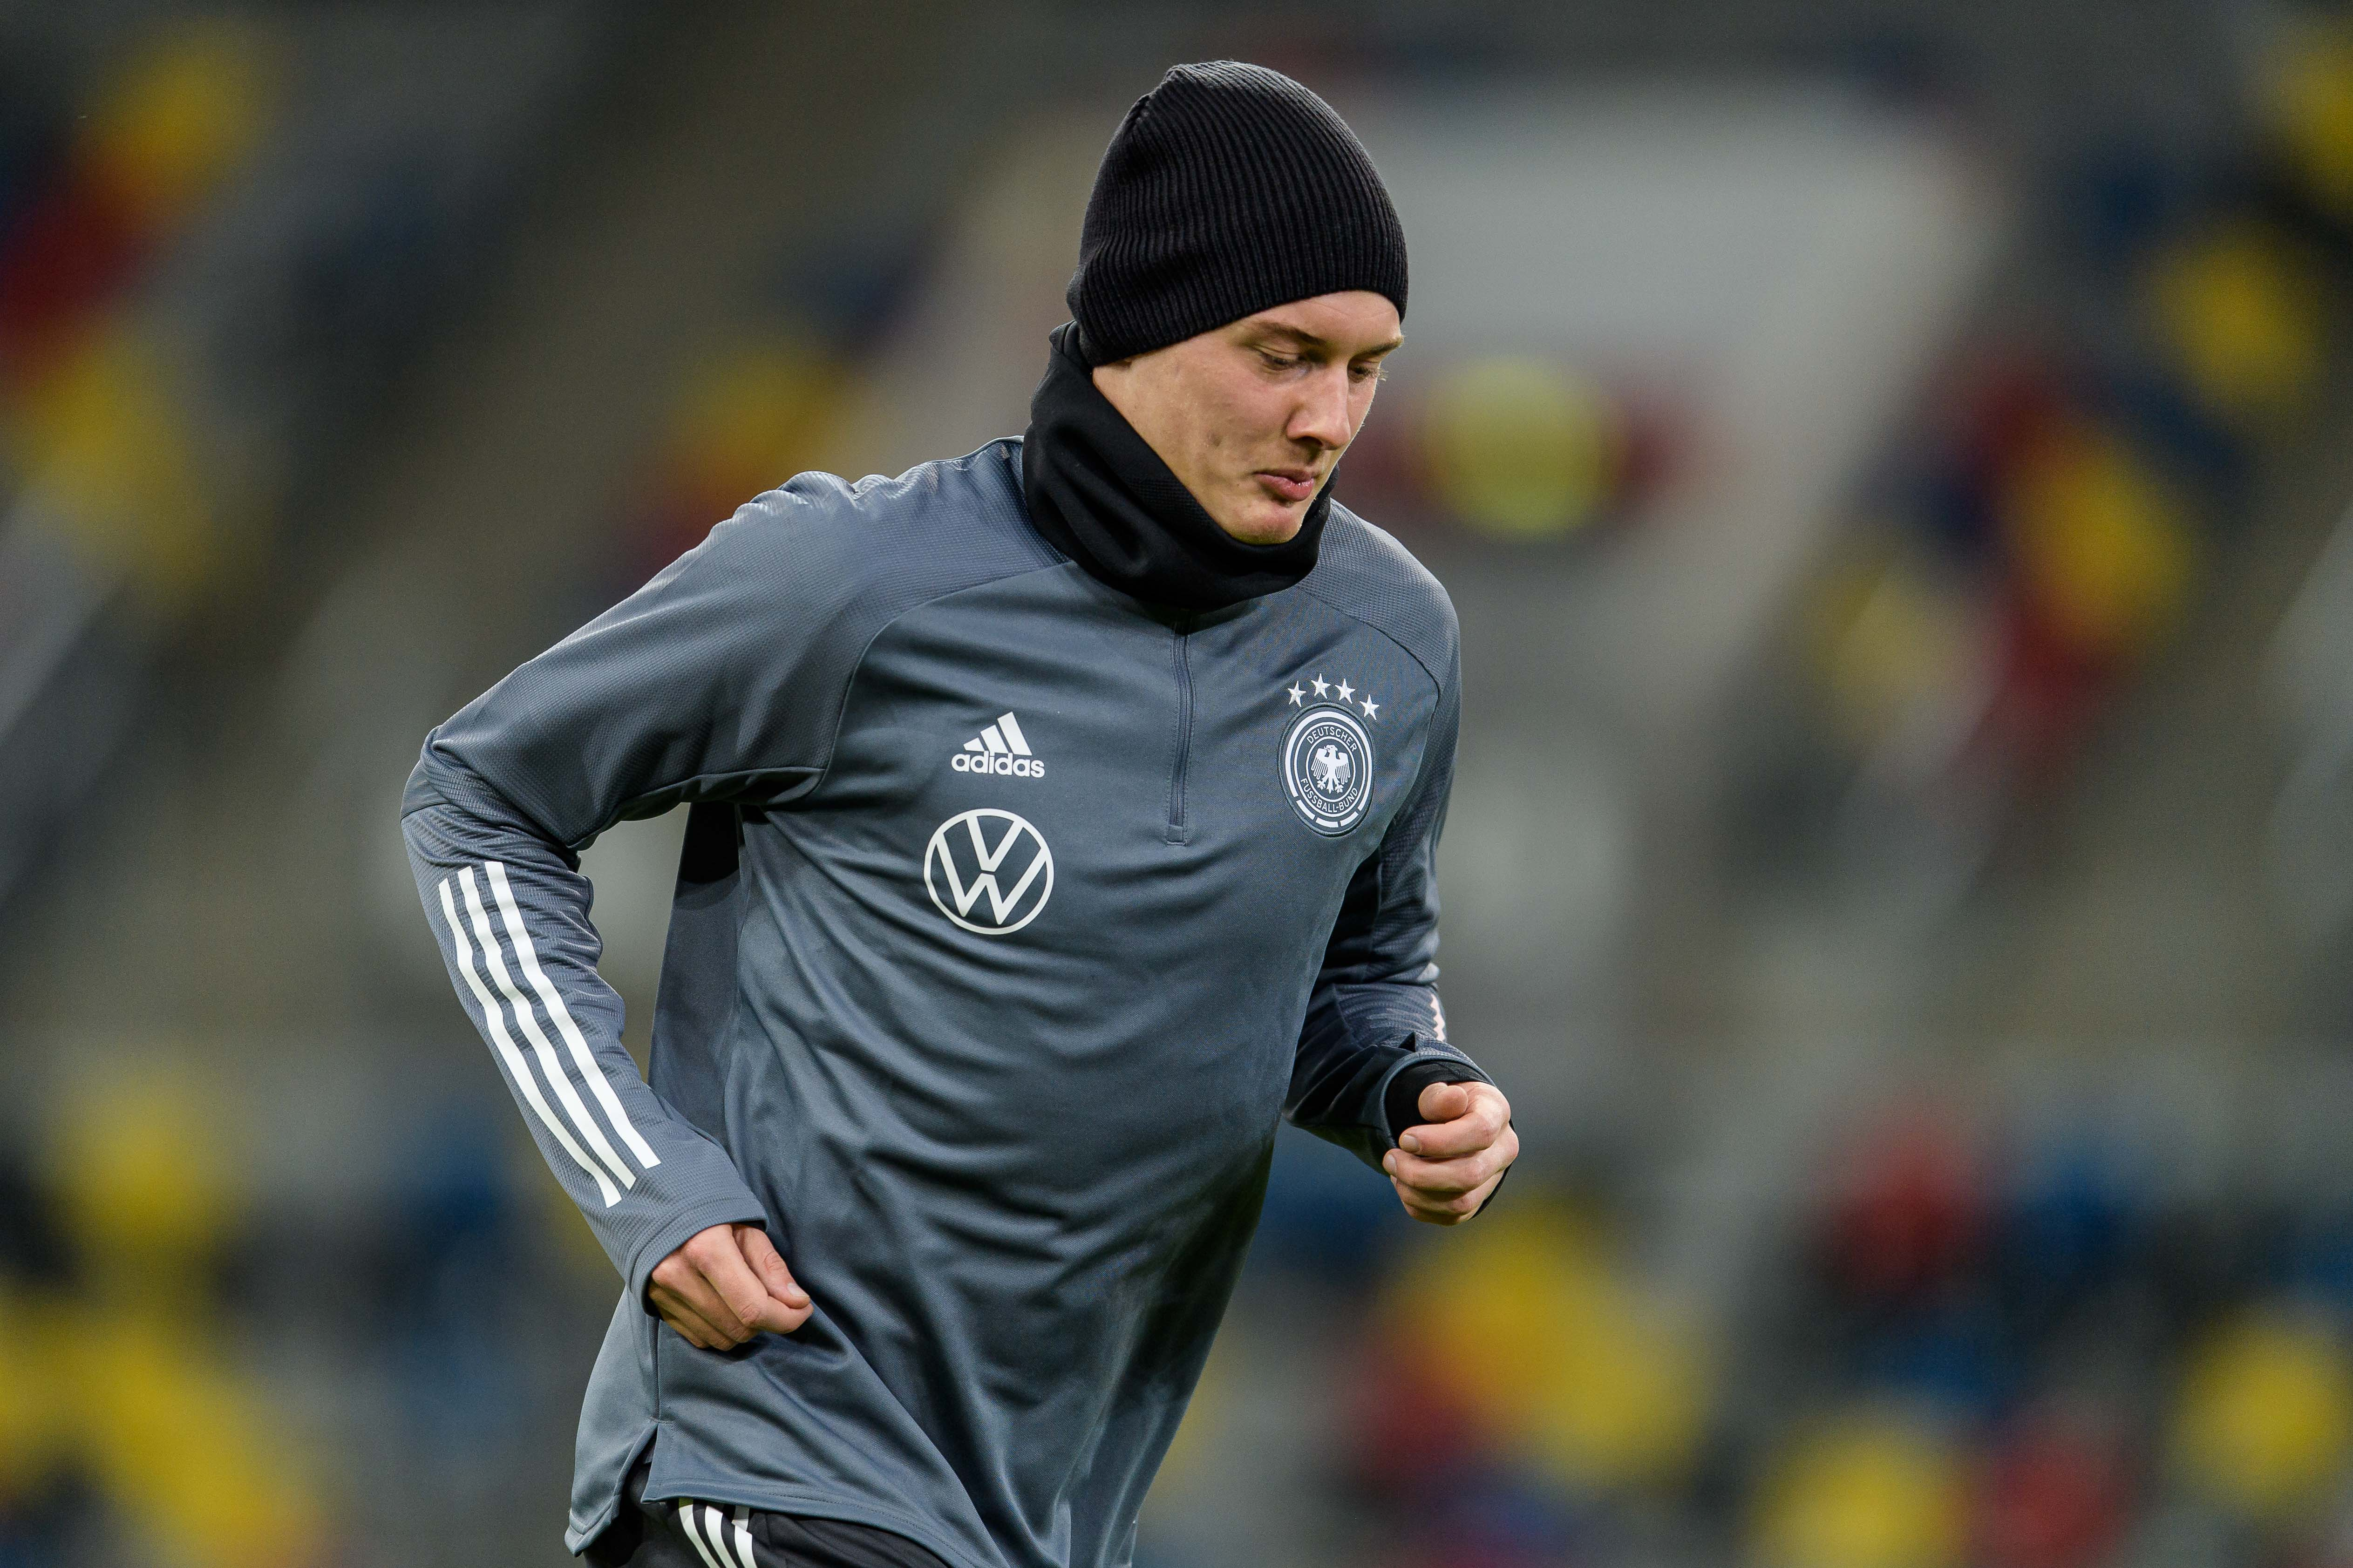 Julian Brandt will have to step up for Germany. (Photo by Jörg Schüler/Bongarts/Getty Images)